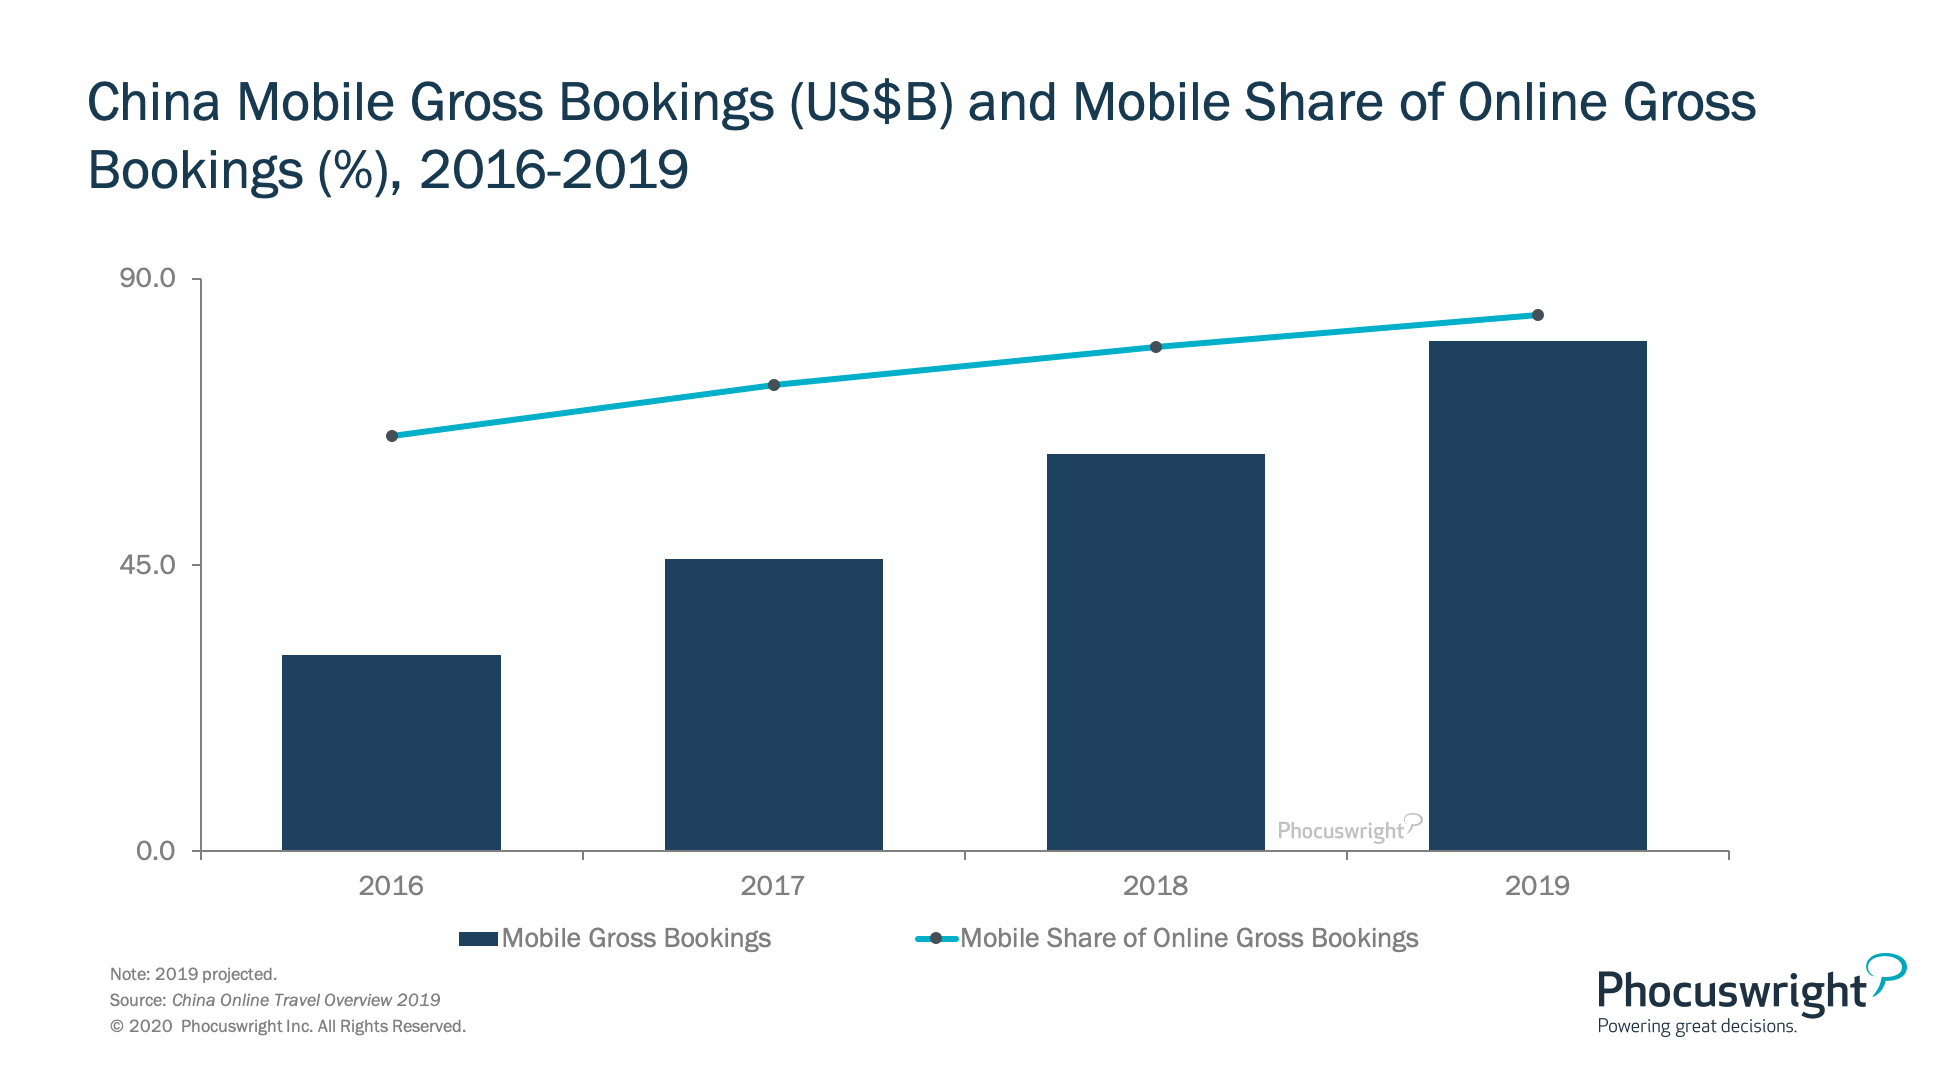 China Mobile Gross Bookings and share of mobile Phocuswright